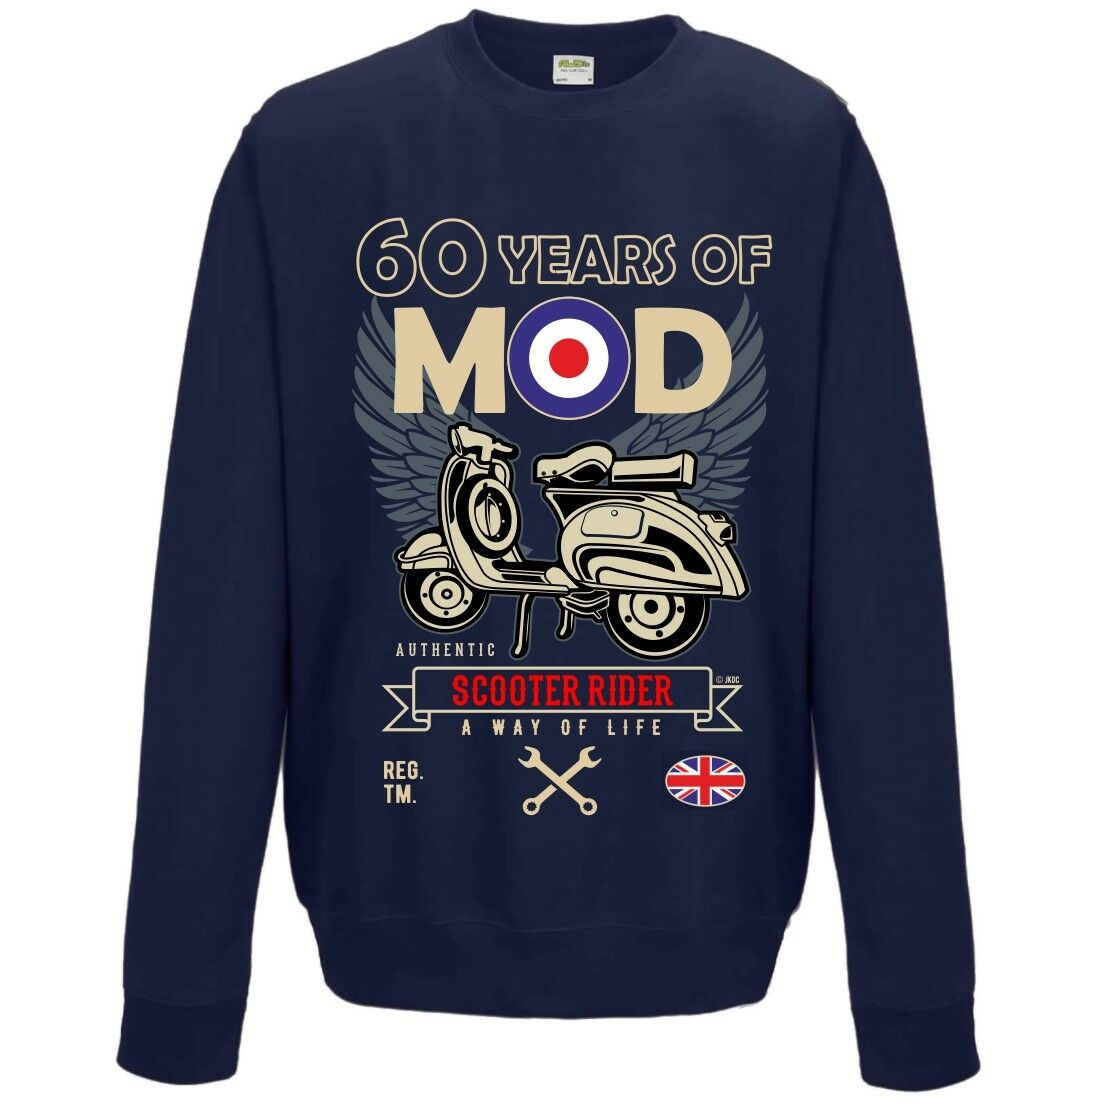 60 Years Of Mod 60° Compleanno Rétro Scooter Rider Unisex Felpa Maglioncino